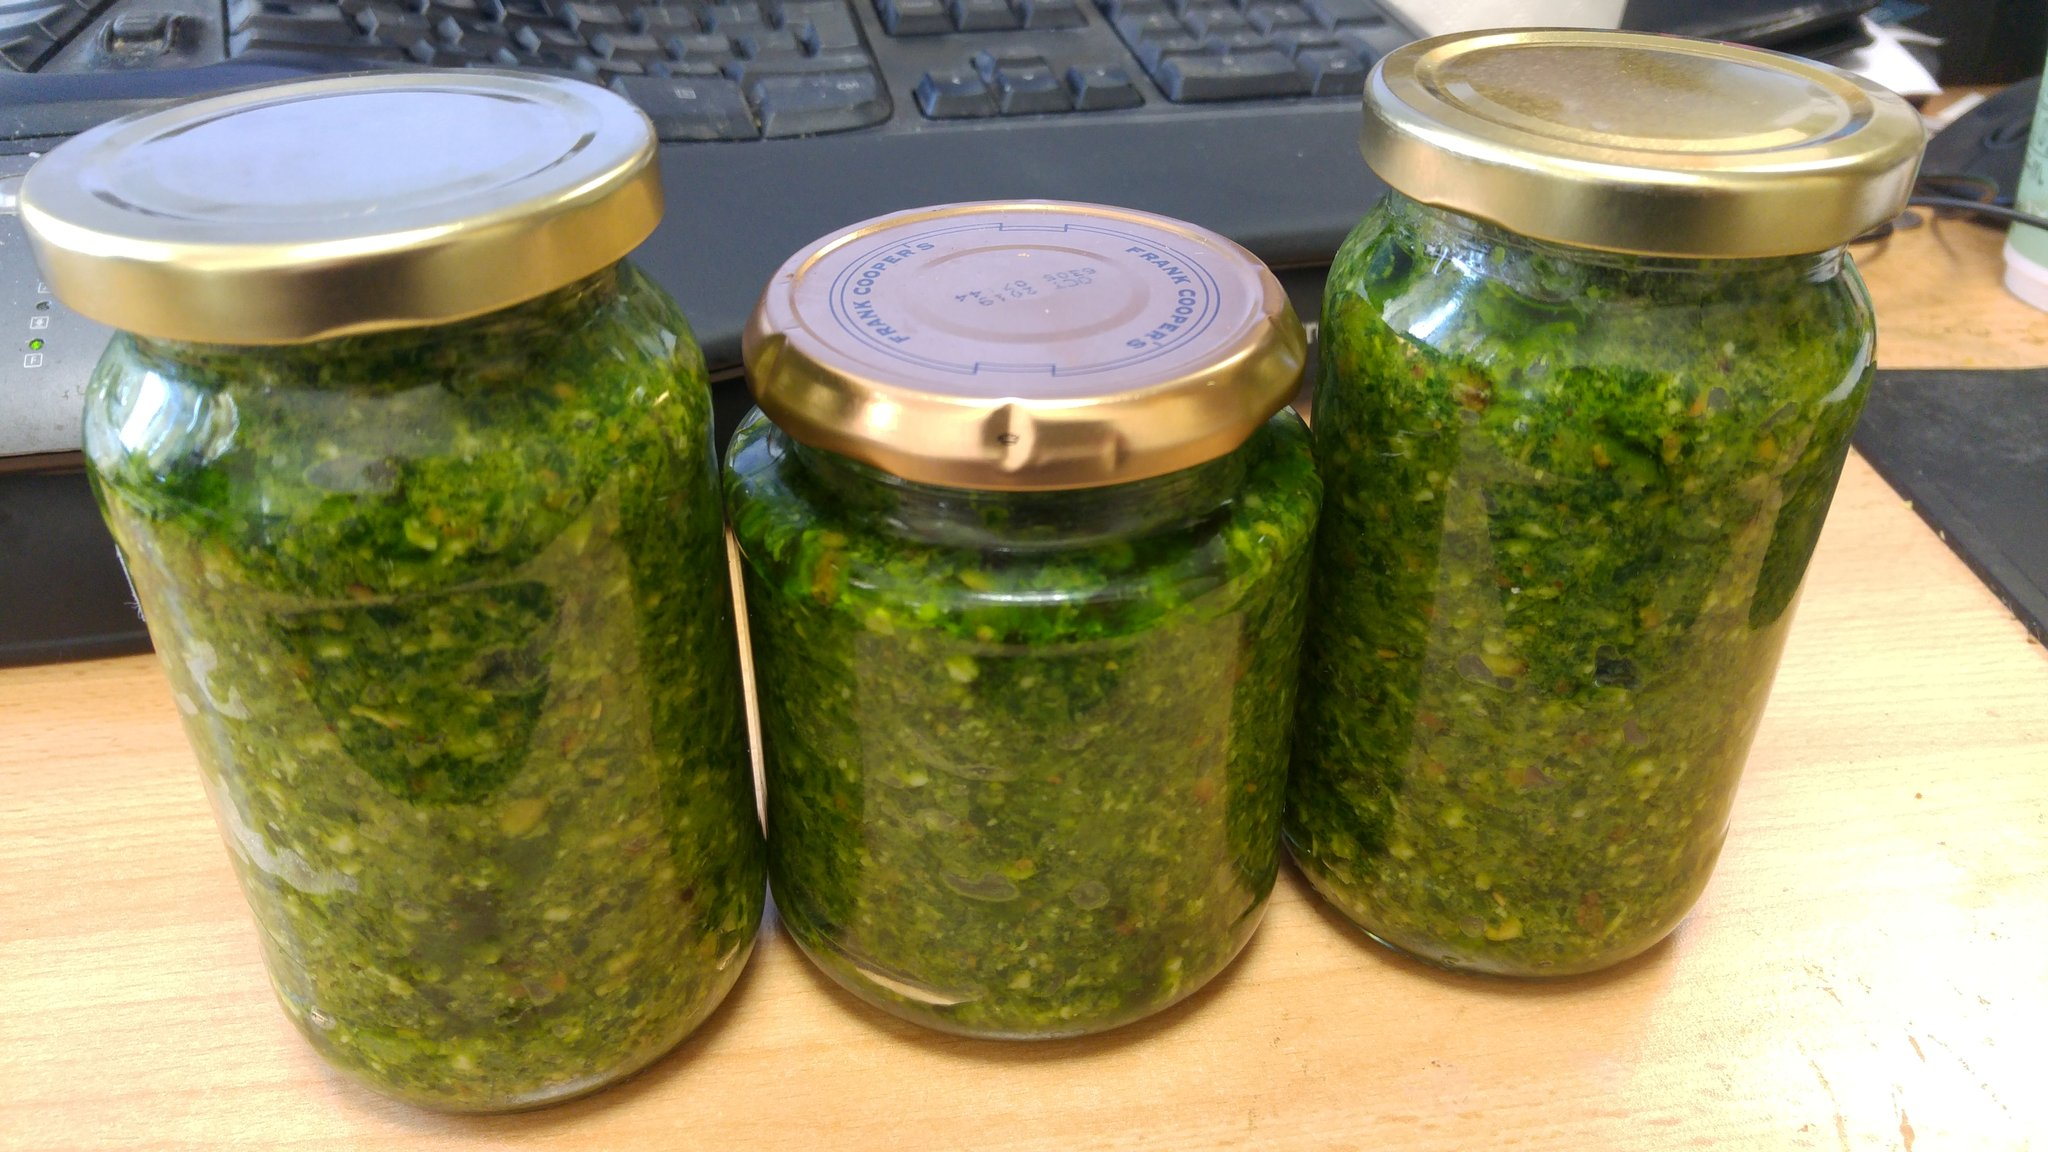 Wild garlic pesto sample ready for final #measurecamp final session https://t.co/QUlHGhov3U